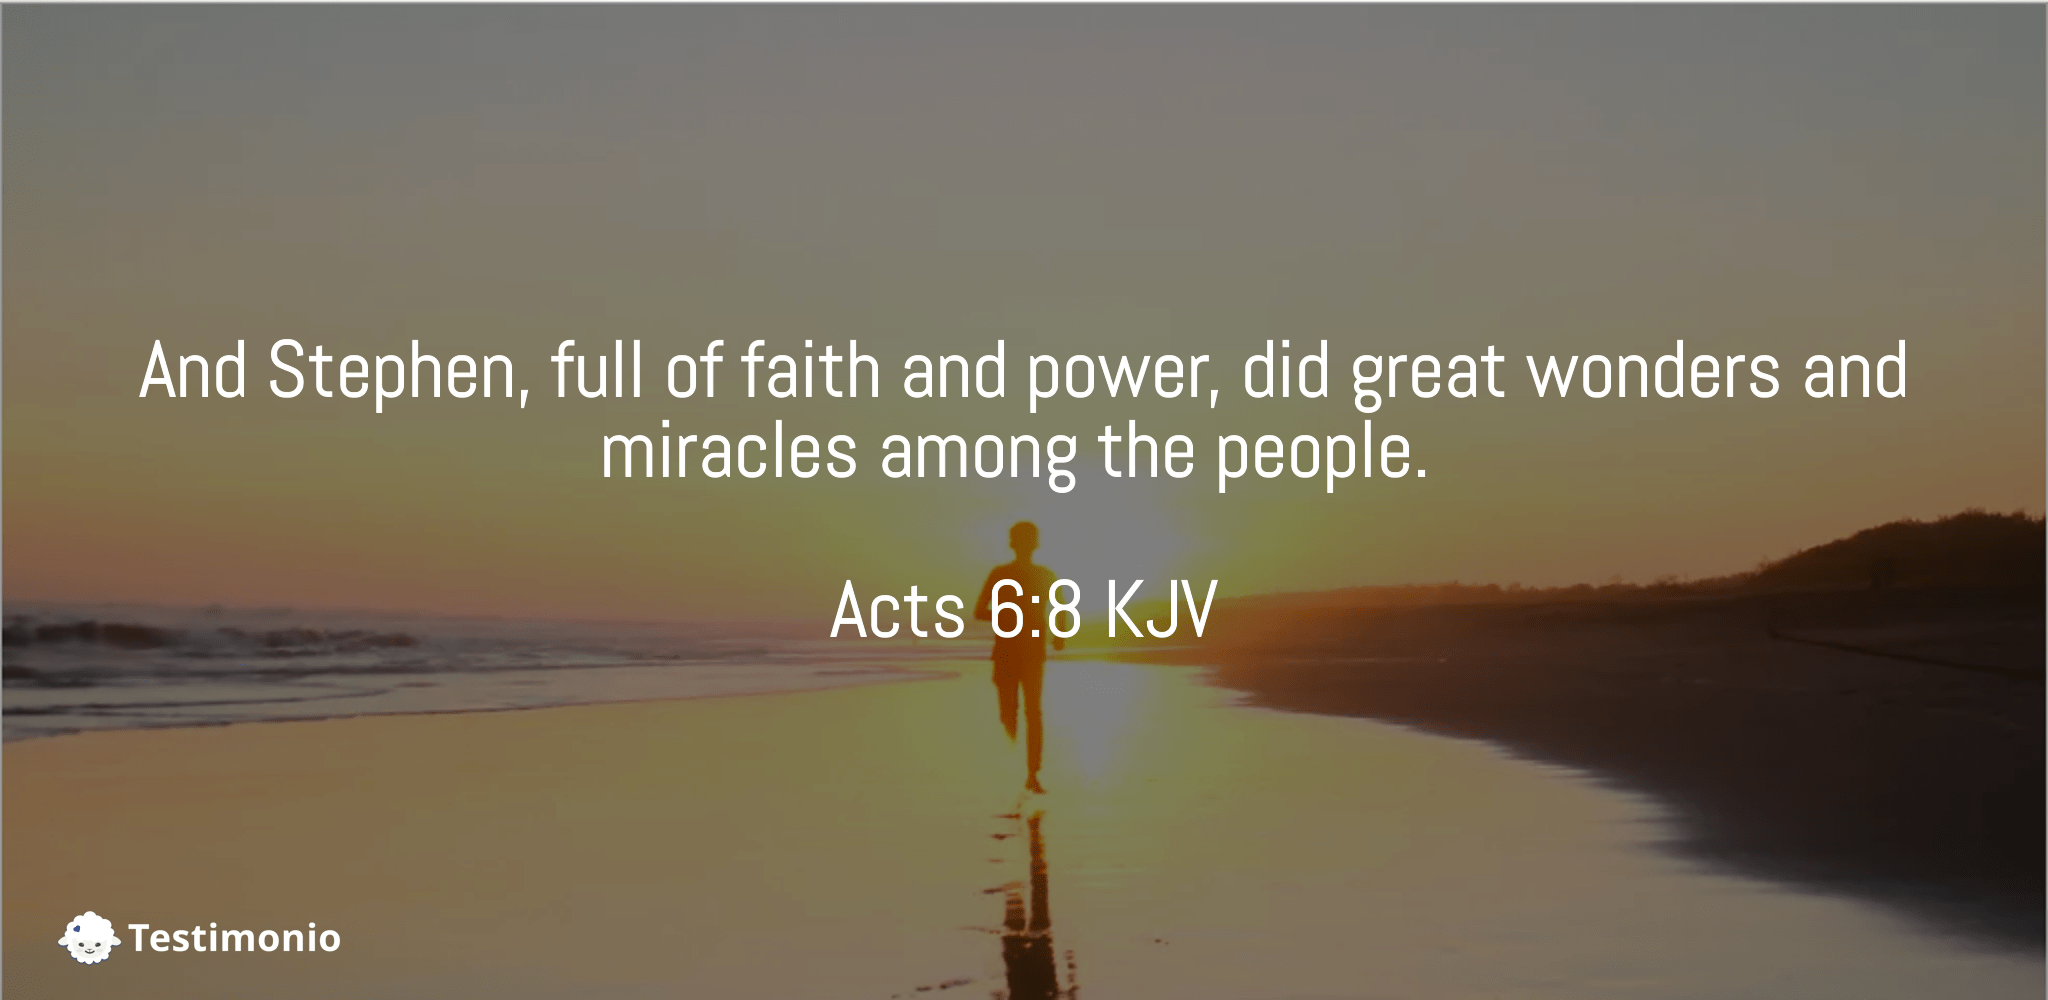 Acts 6:8